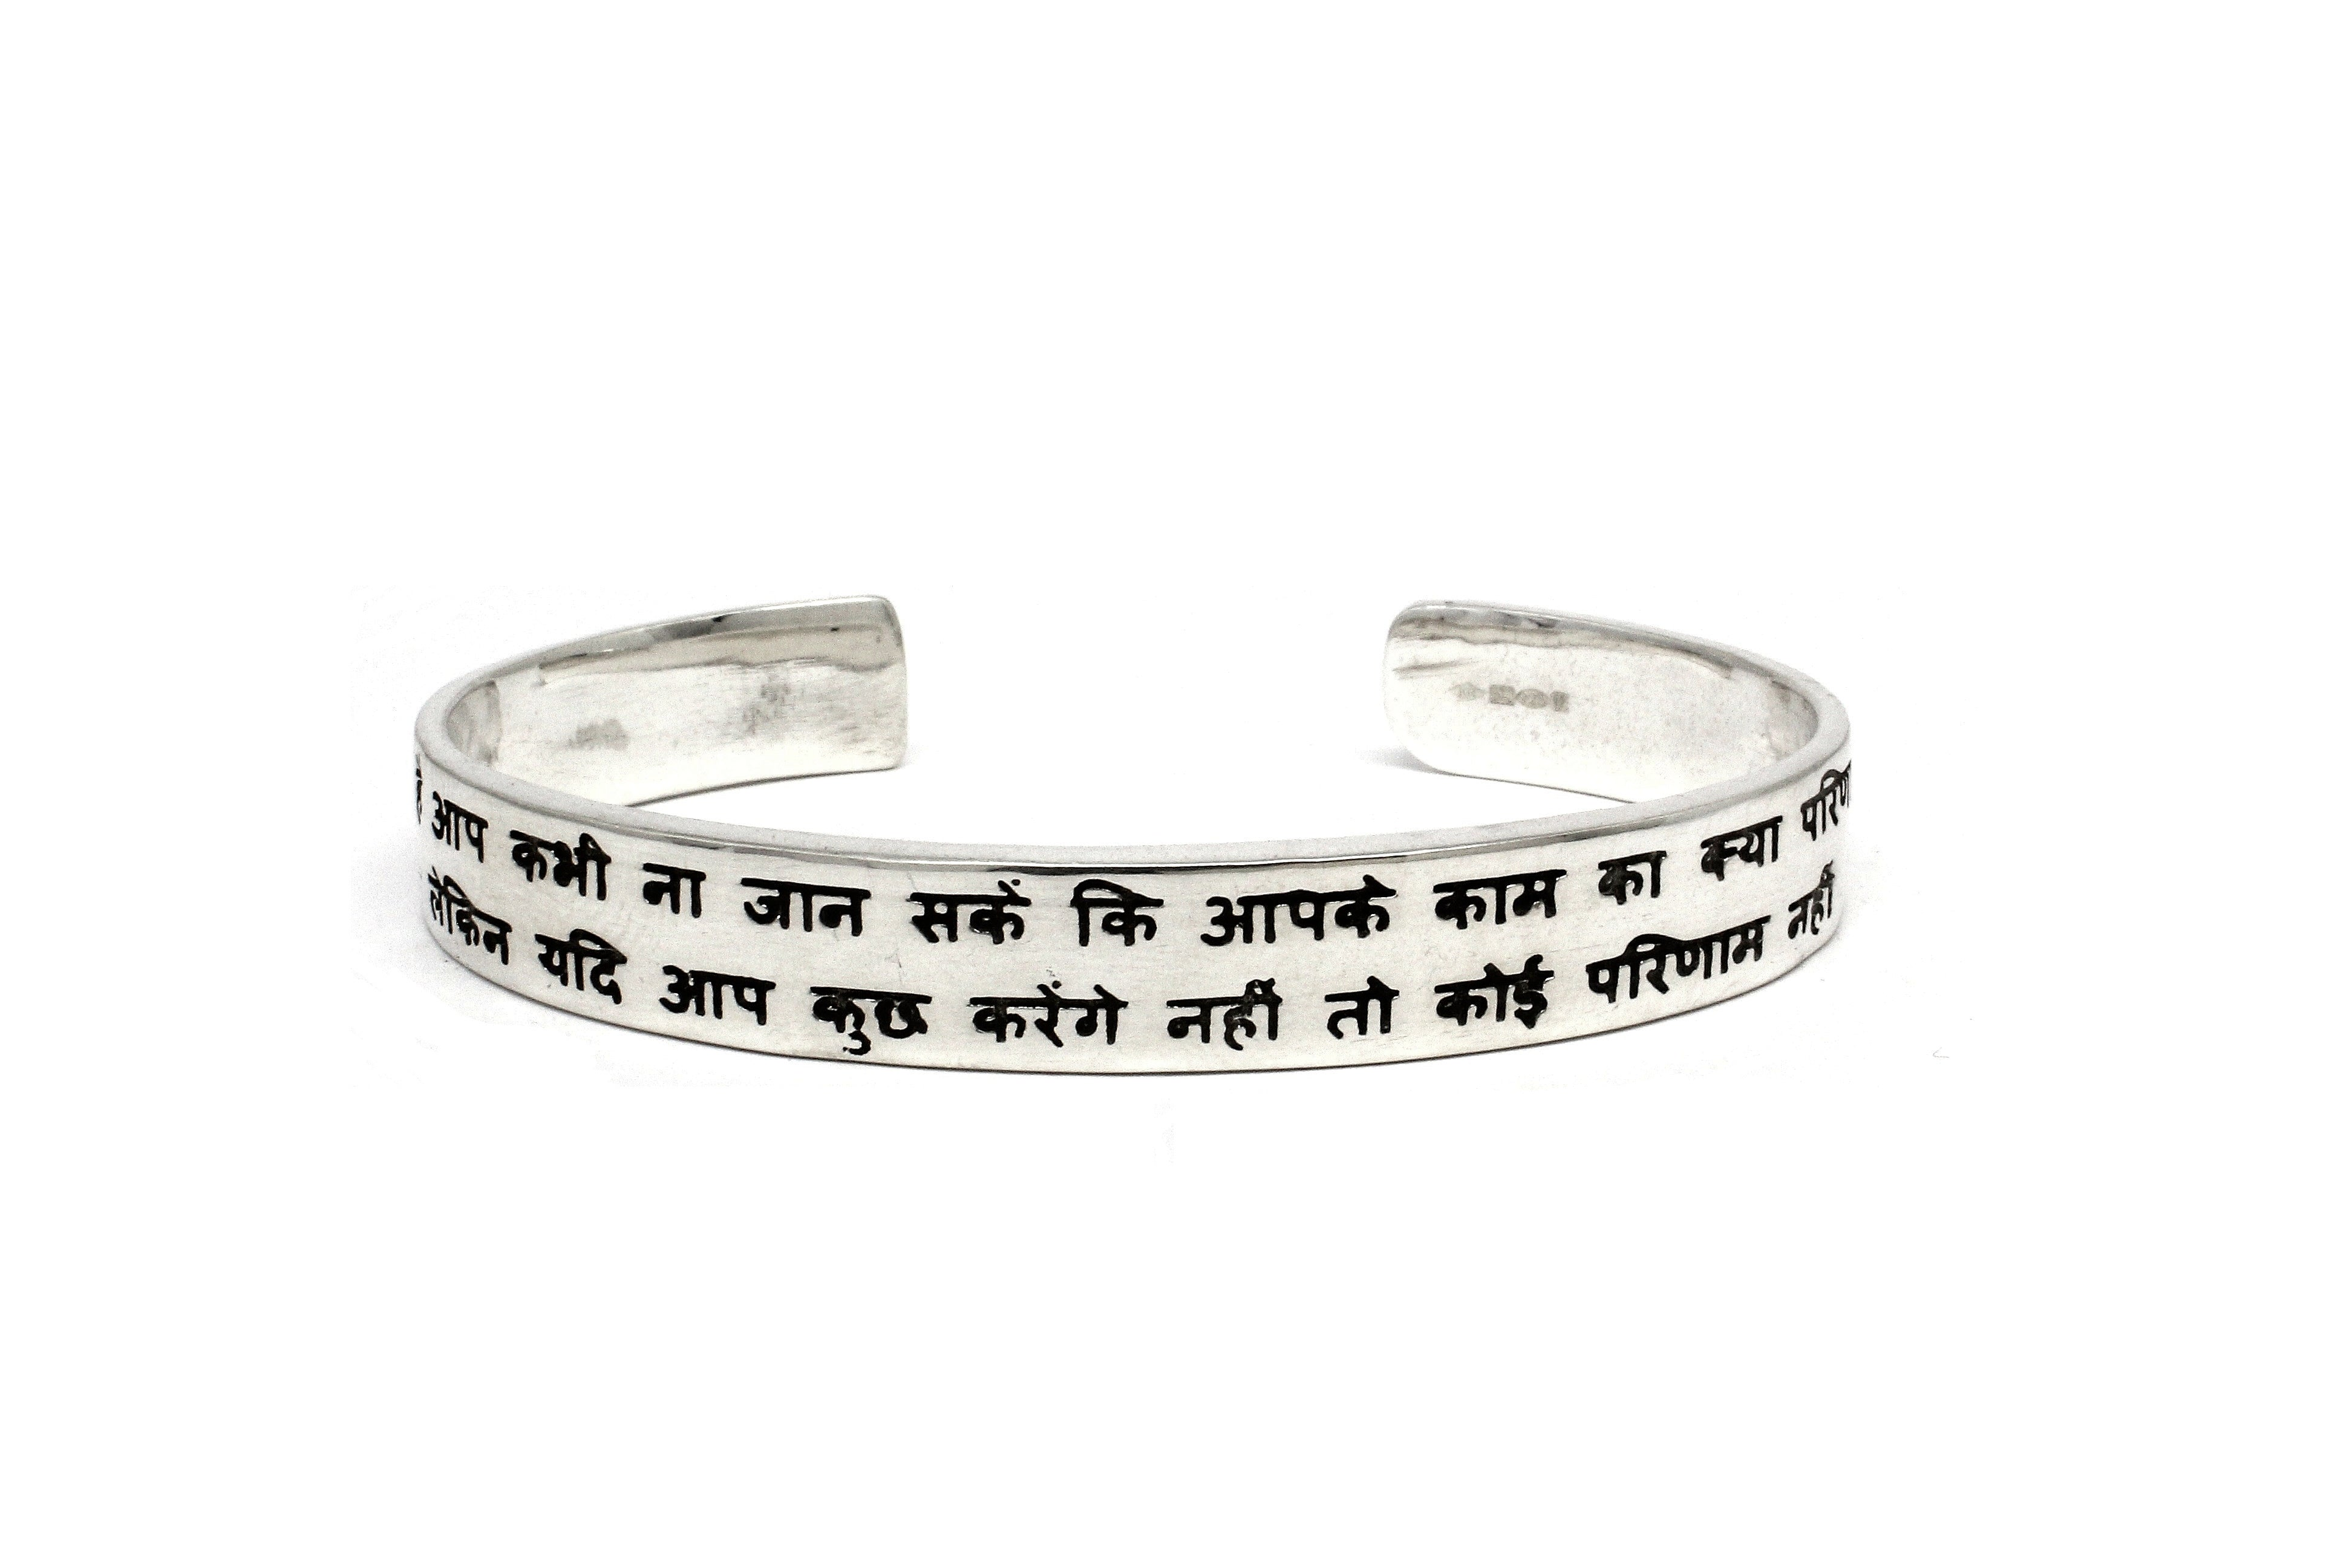 dil hindi original ahalife bracelet product mielini